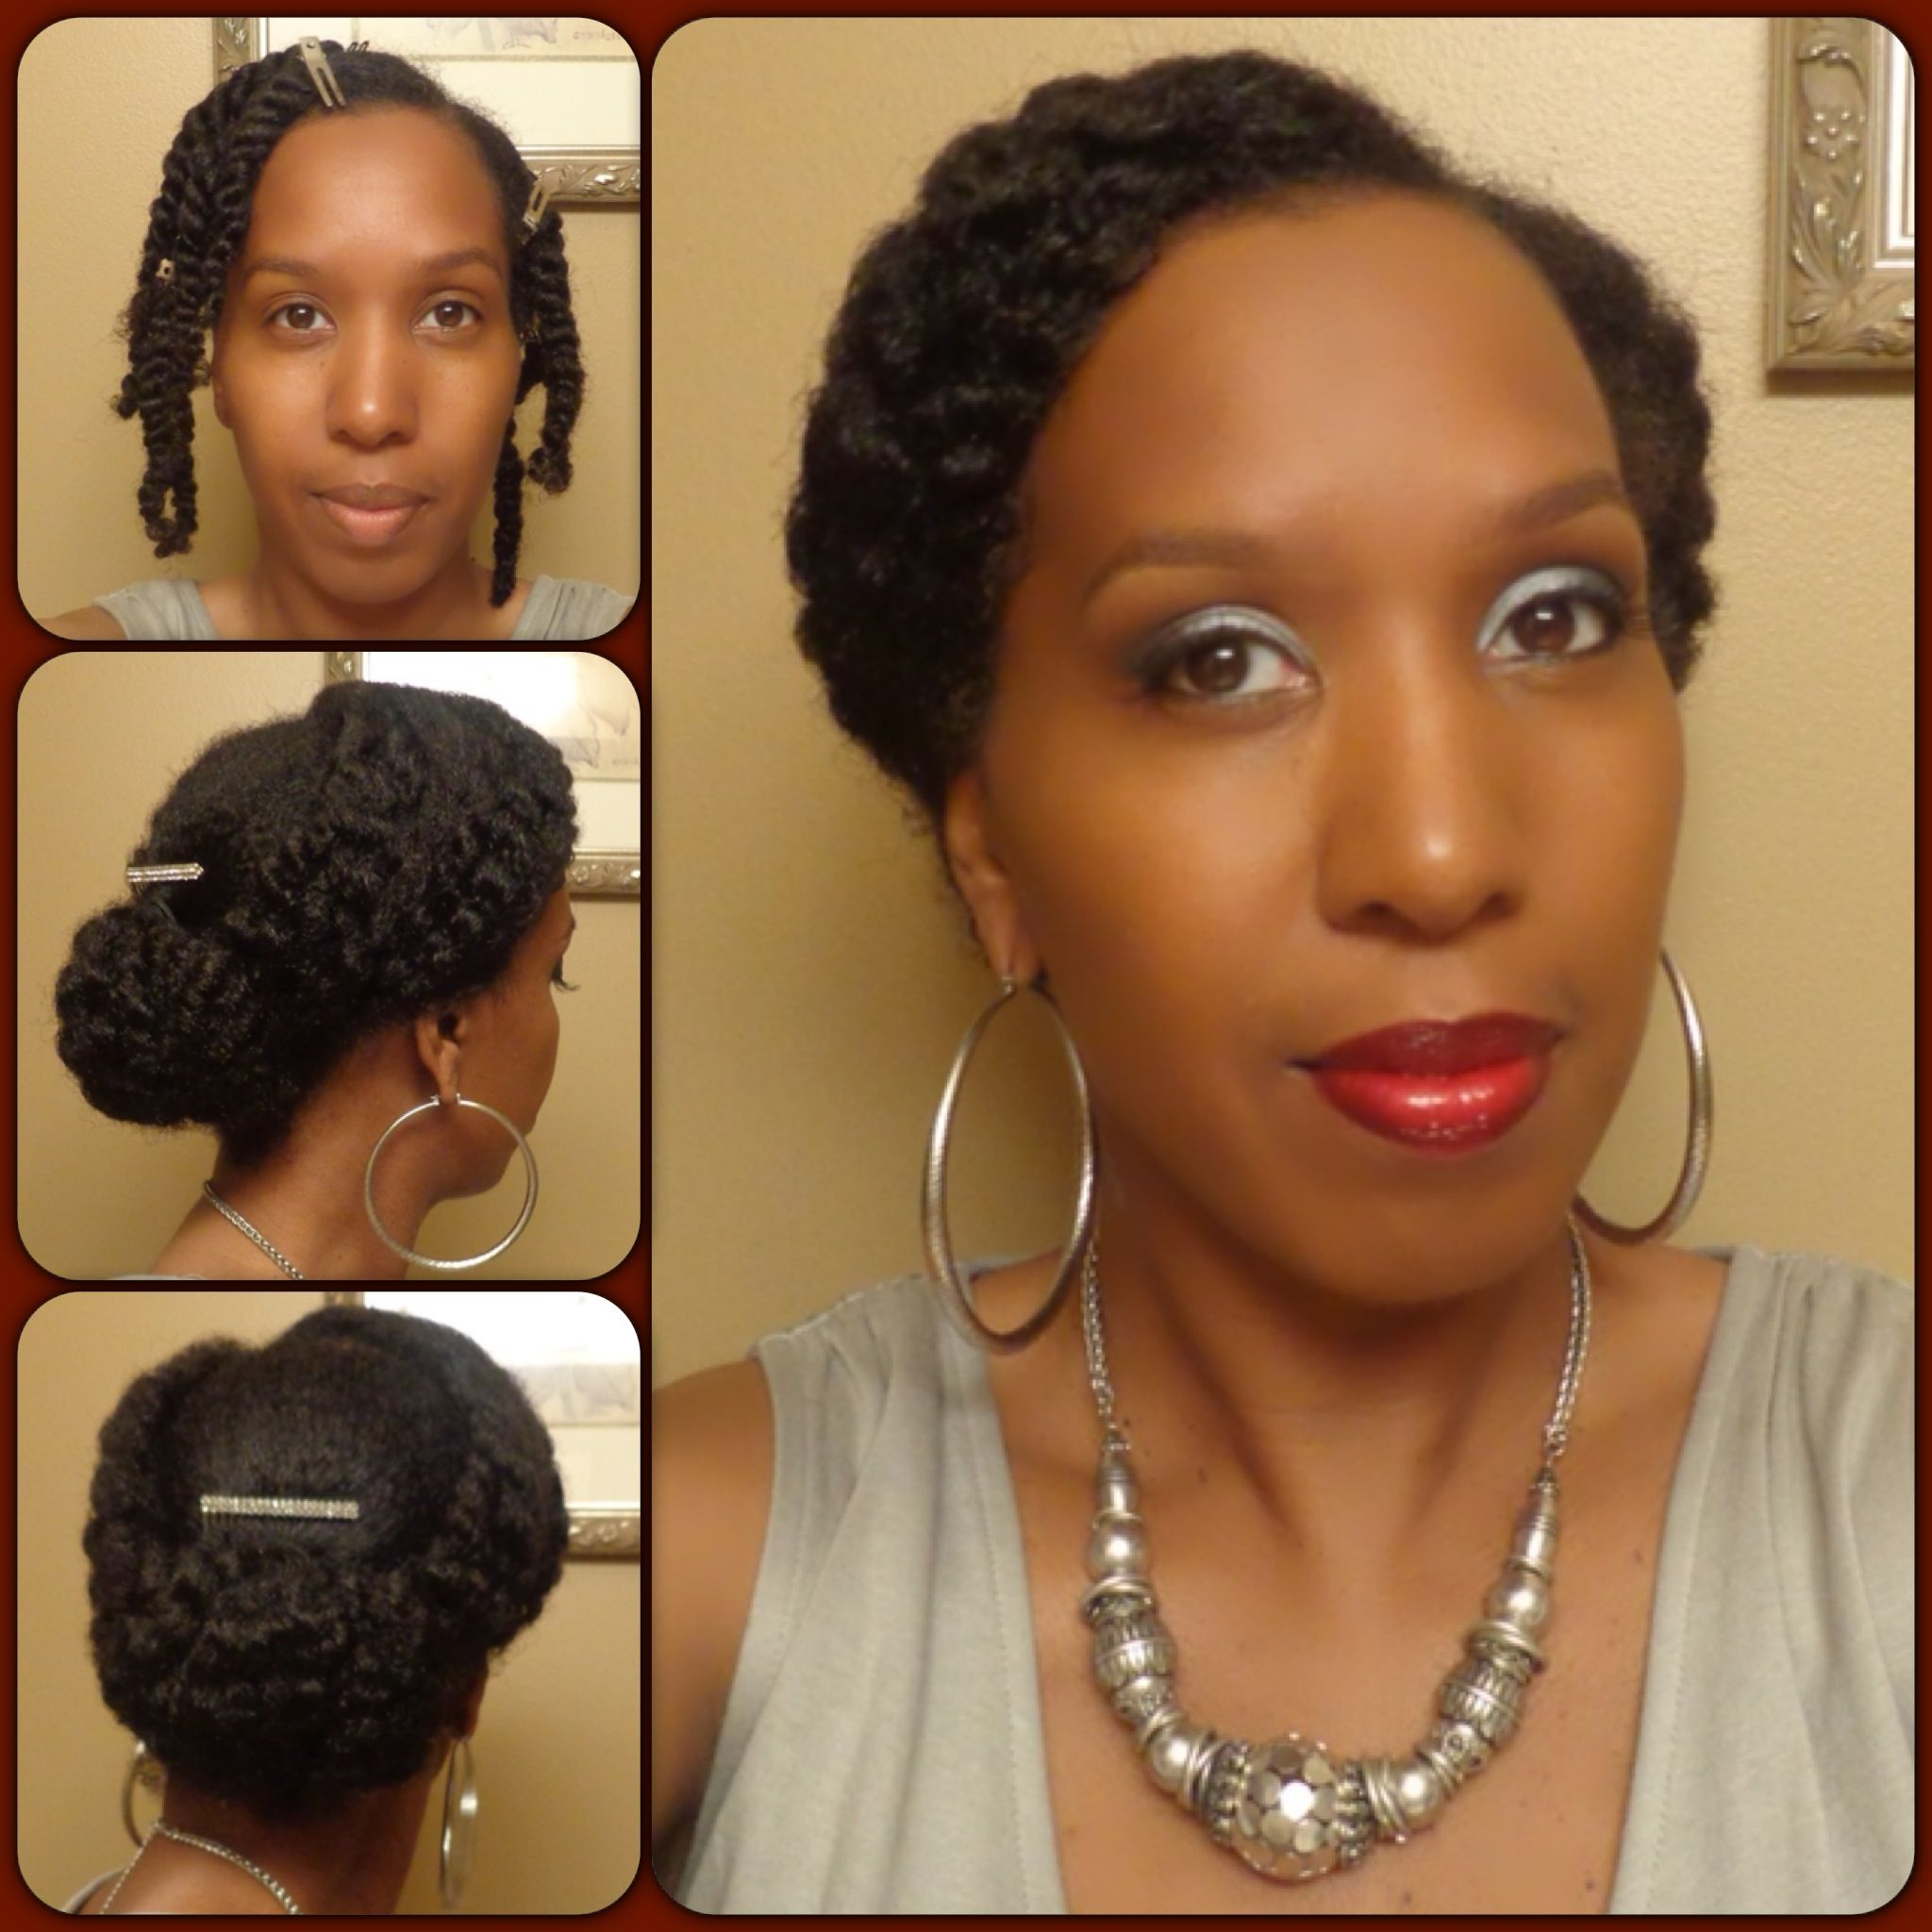 Tuck And Pin Great Protective Style For Rainy Days Rainy Days In The Forecast Natural Hair Styles Hair Styles Natural Hair Updo